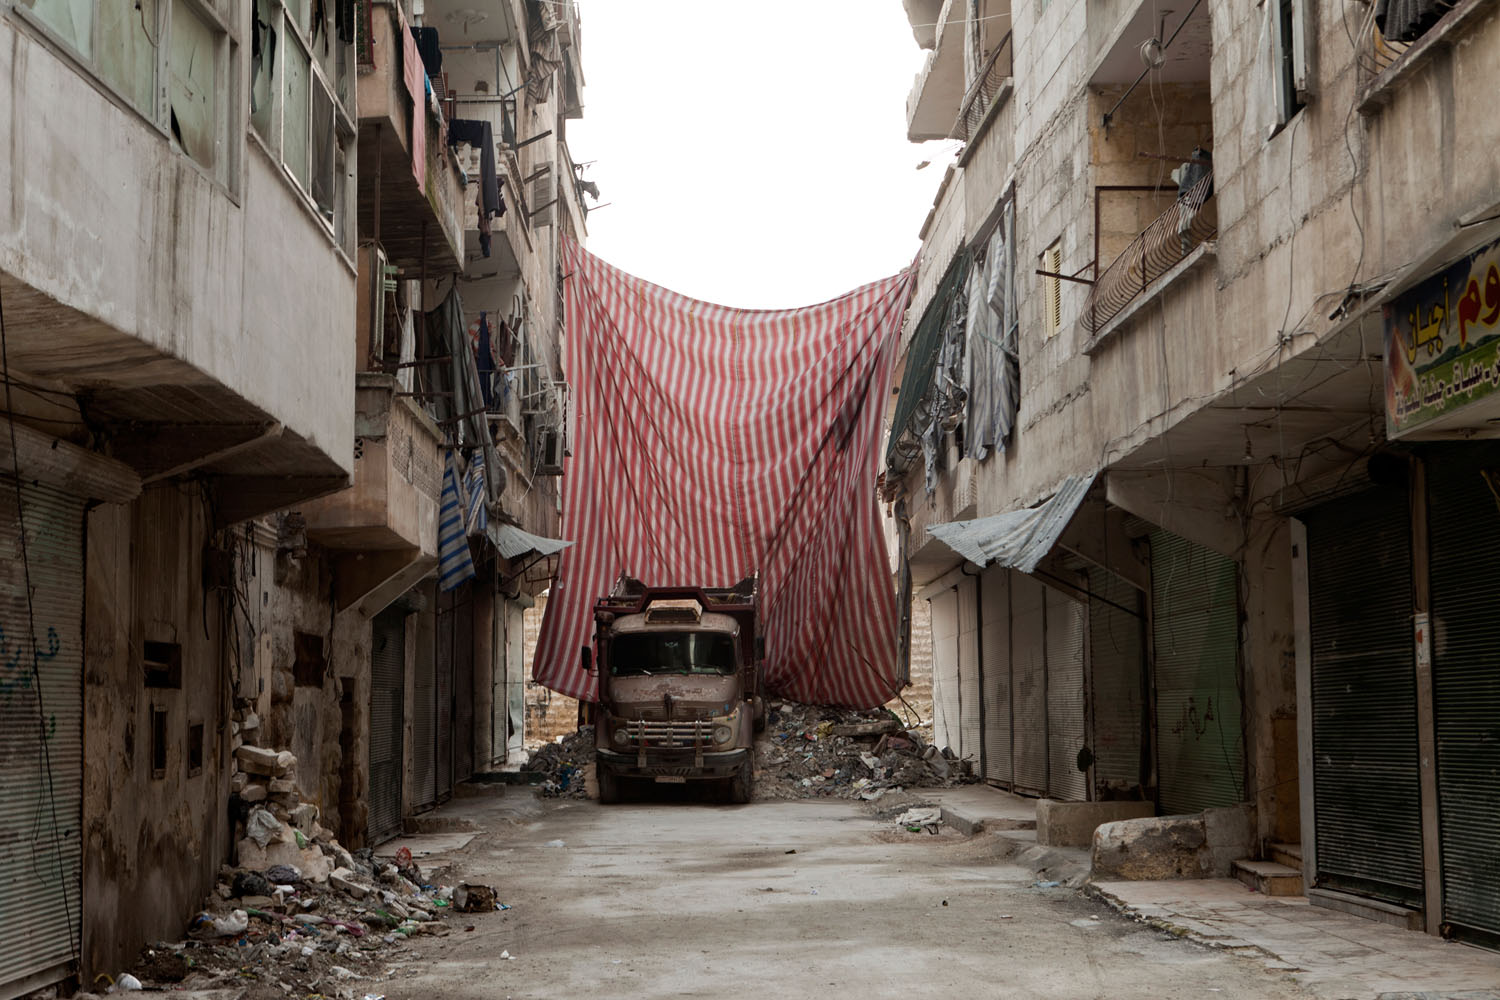 Pagetti says the curtains reminded him of the miles upon miles of concrete barriers that crisscrossed Baghdad during the worst of the sectarian violence there, in 2006 and 2007.